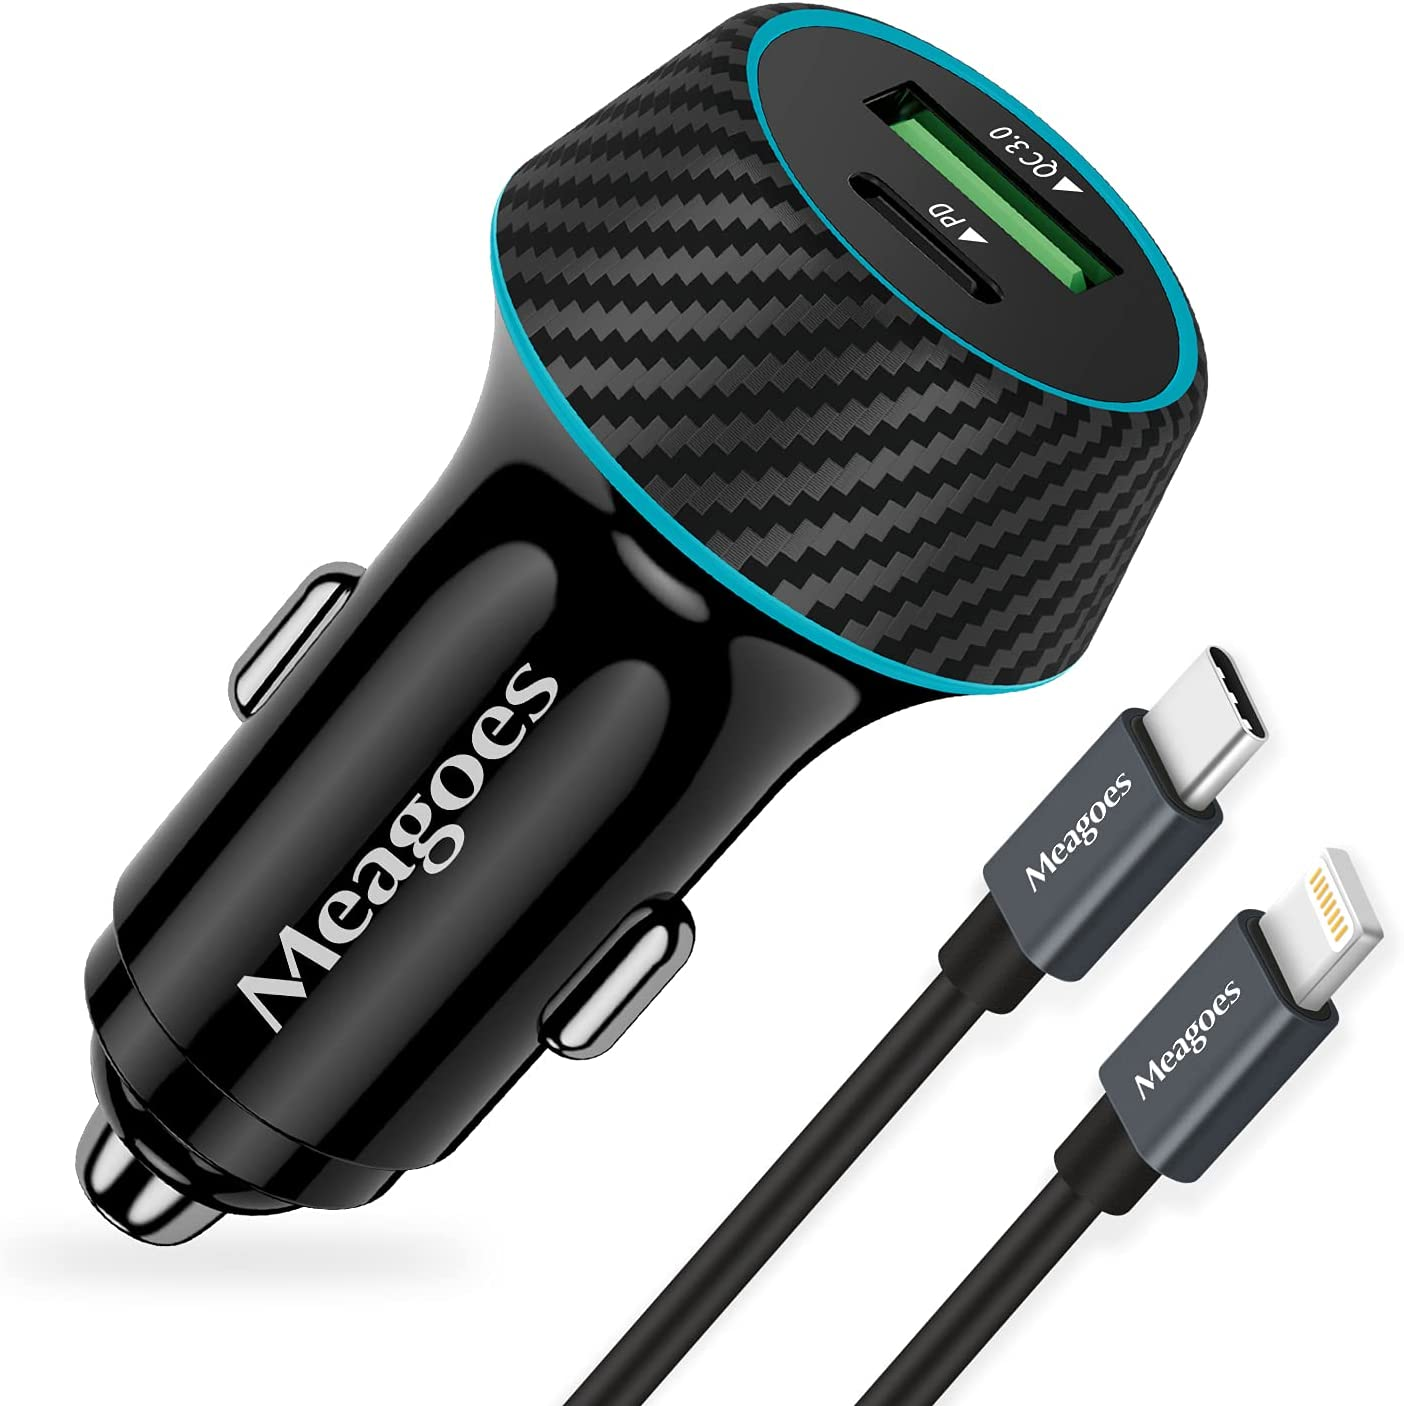 Fast USB C Car Charger, Meagoes 48W Dual Rapid Charging Adapter with PD3.0&QC3.0, Compatible with Apple iPhone 13/12/Pro/Max/Mini/11/XS/XR/X/8 Plus/SE - 3.3ft MFi Certified Type C to Lightning Cable